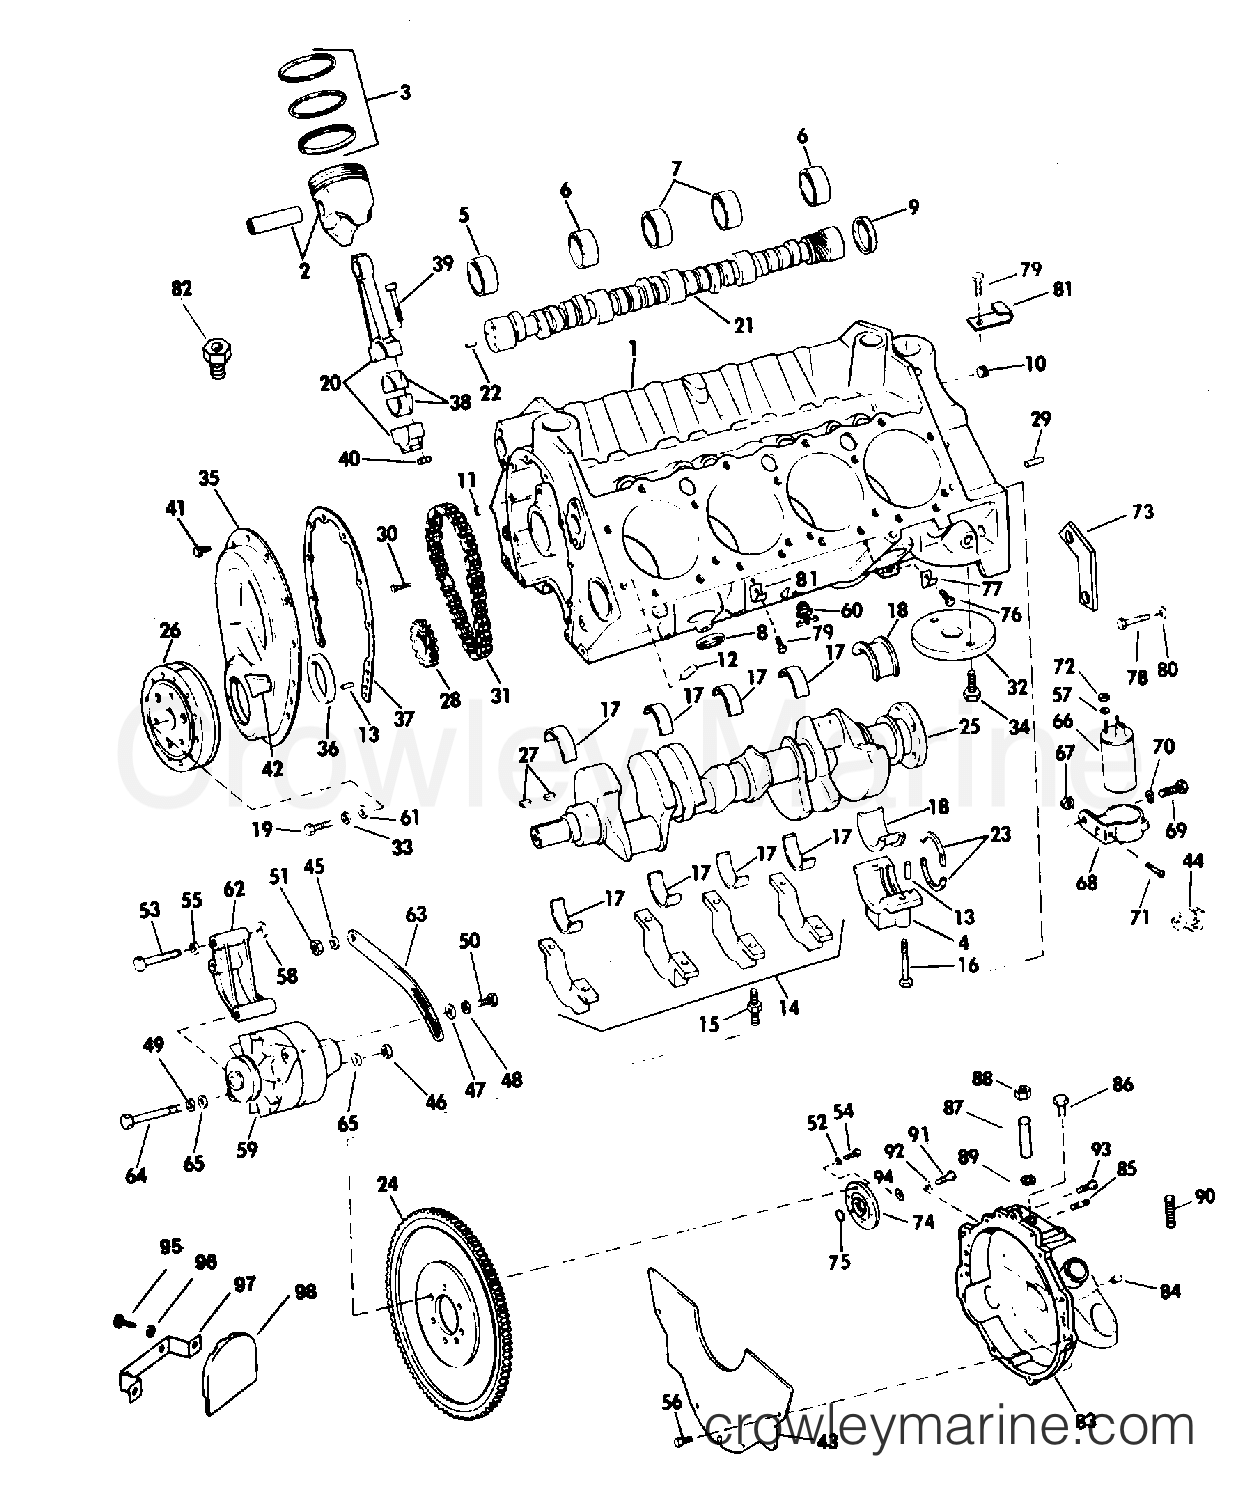 79 Omc Sterndrive Diagram Trusted Wiring 1978 Crankcase Group 185 225 Hp Models Stern Drive 240 990250p Tilt Parts